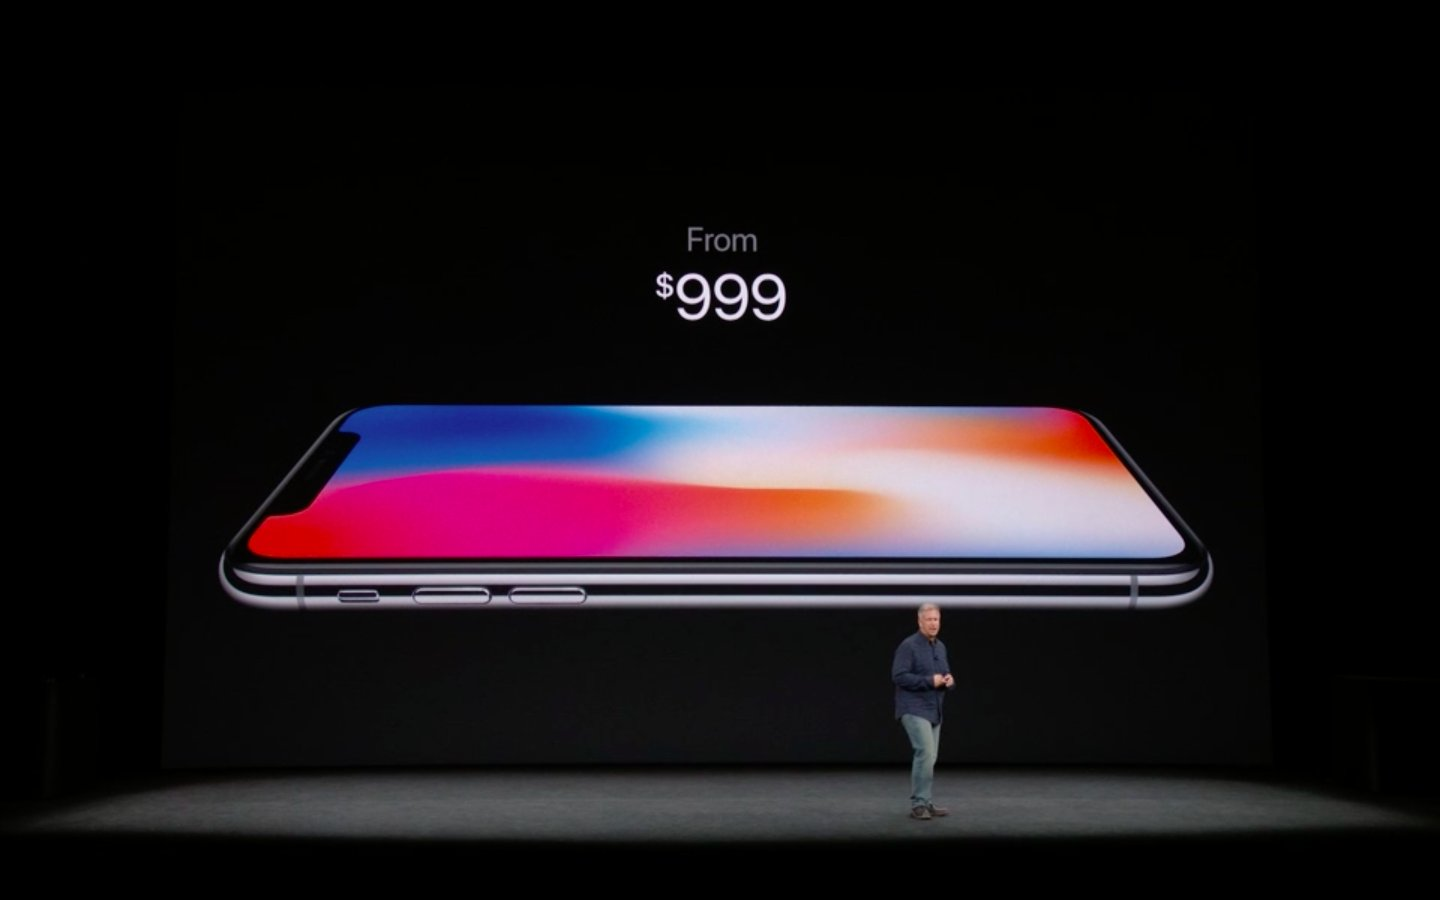 iPhone X rundown: https://t.co/XeyDLs8Nb1 ✅ $999 ✅ Preorders Oct. 27 ✅ Available Nov. 3 #AppleEvent https://t.co/bDo4V6CFYK